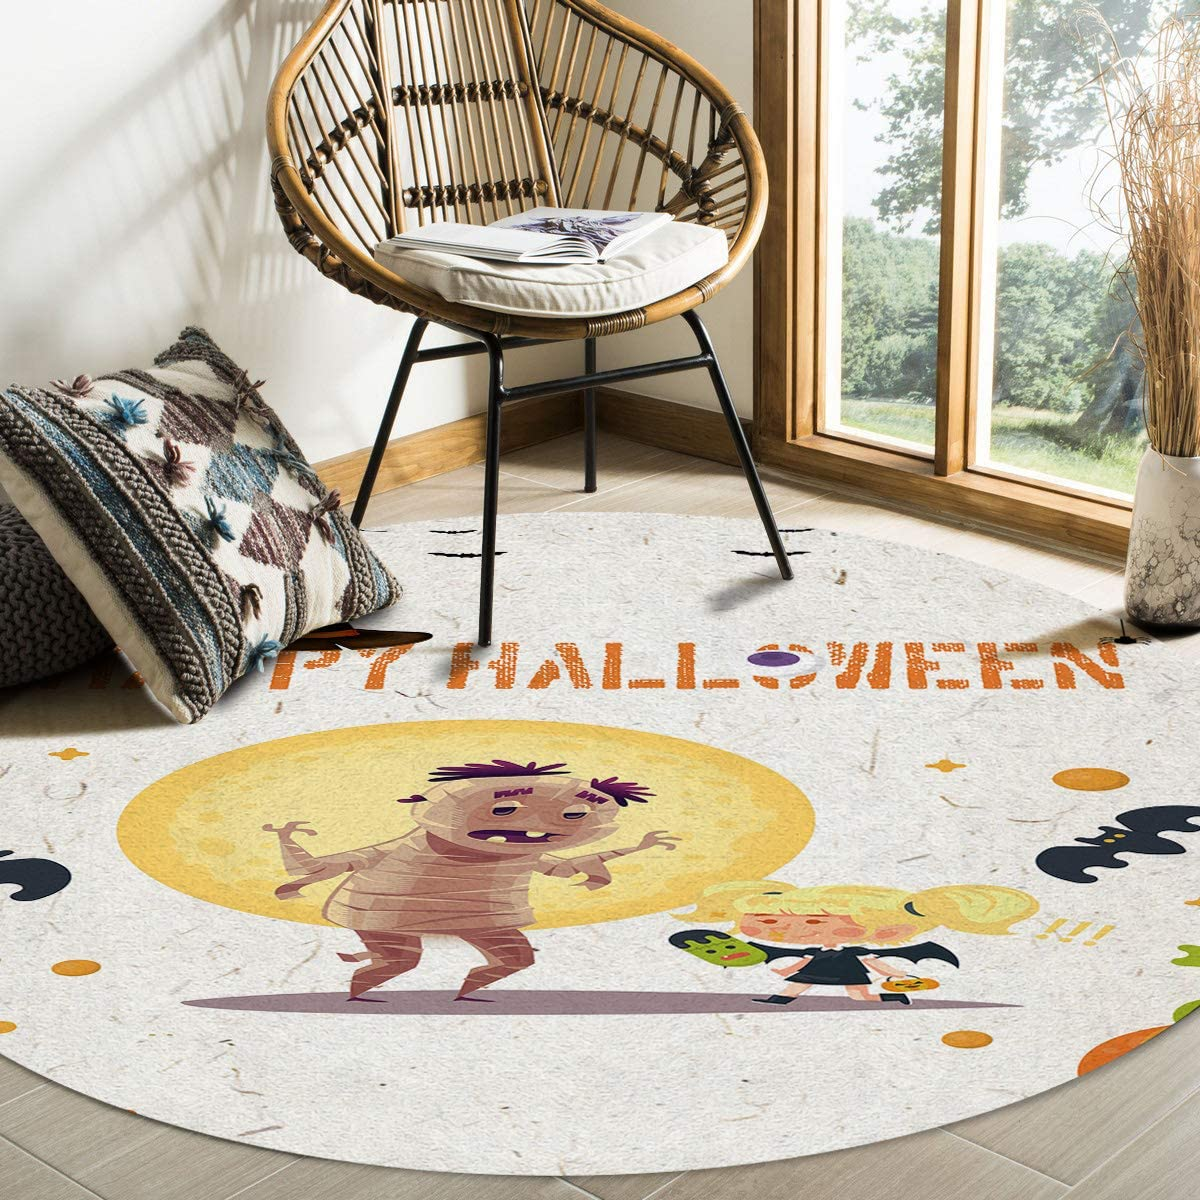 Modern Ranking TOP18 Round Area Rug Fees free 4 Feet Non-Shedding Low-Profi Bedroom for